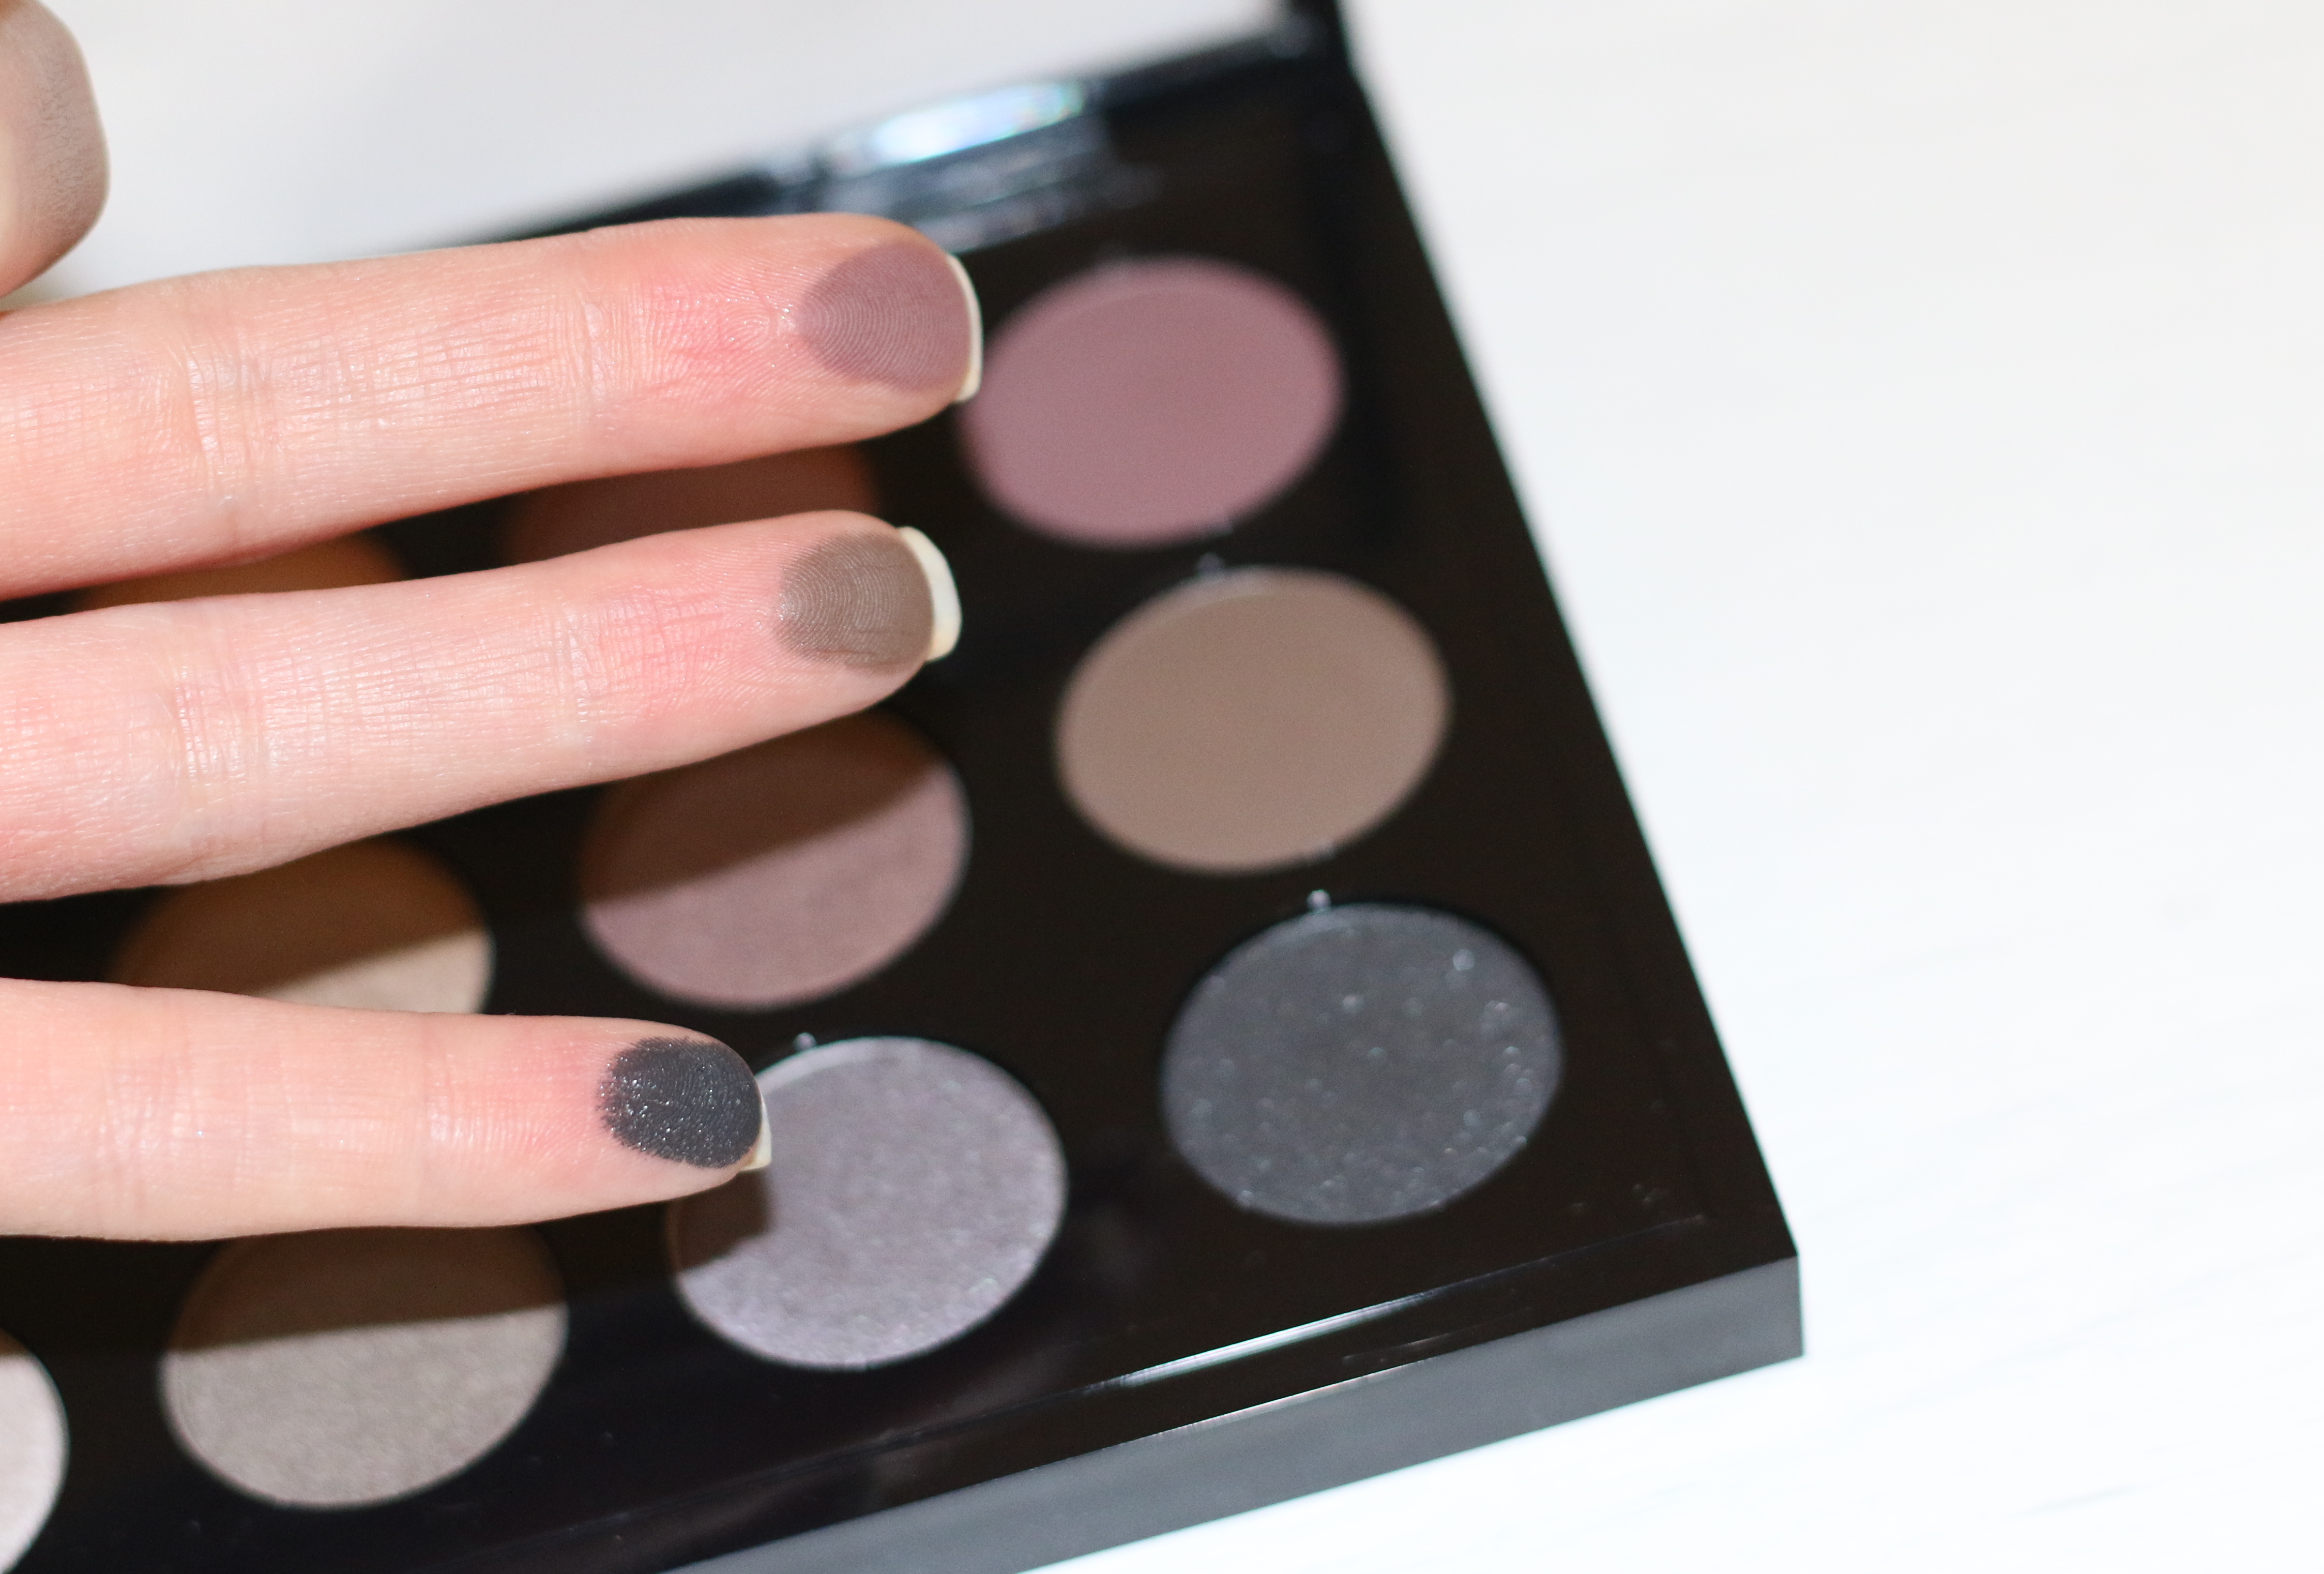 mac cool neutral palette review